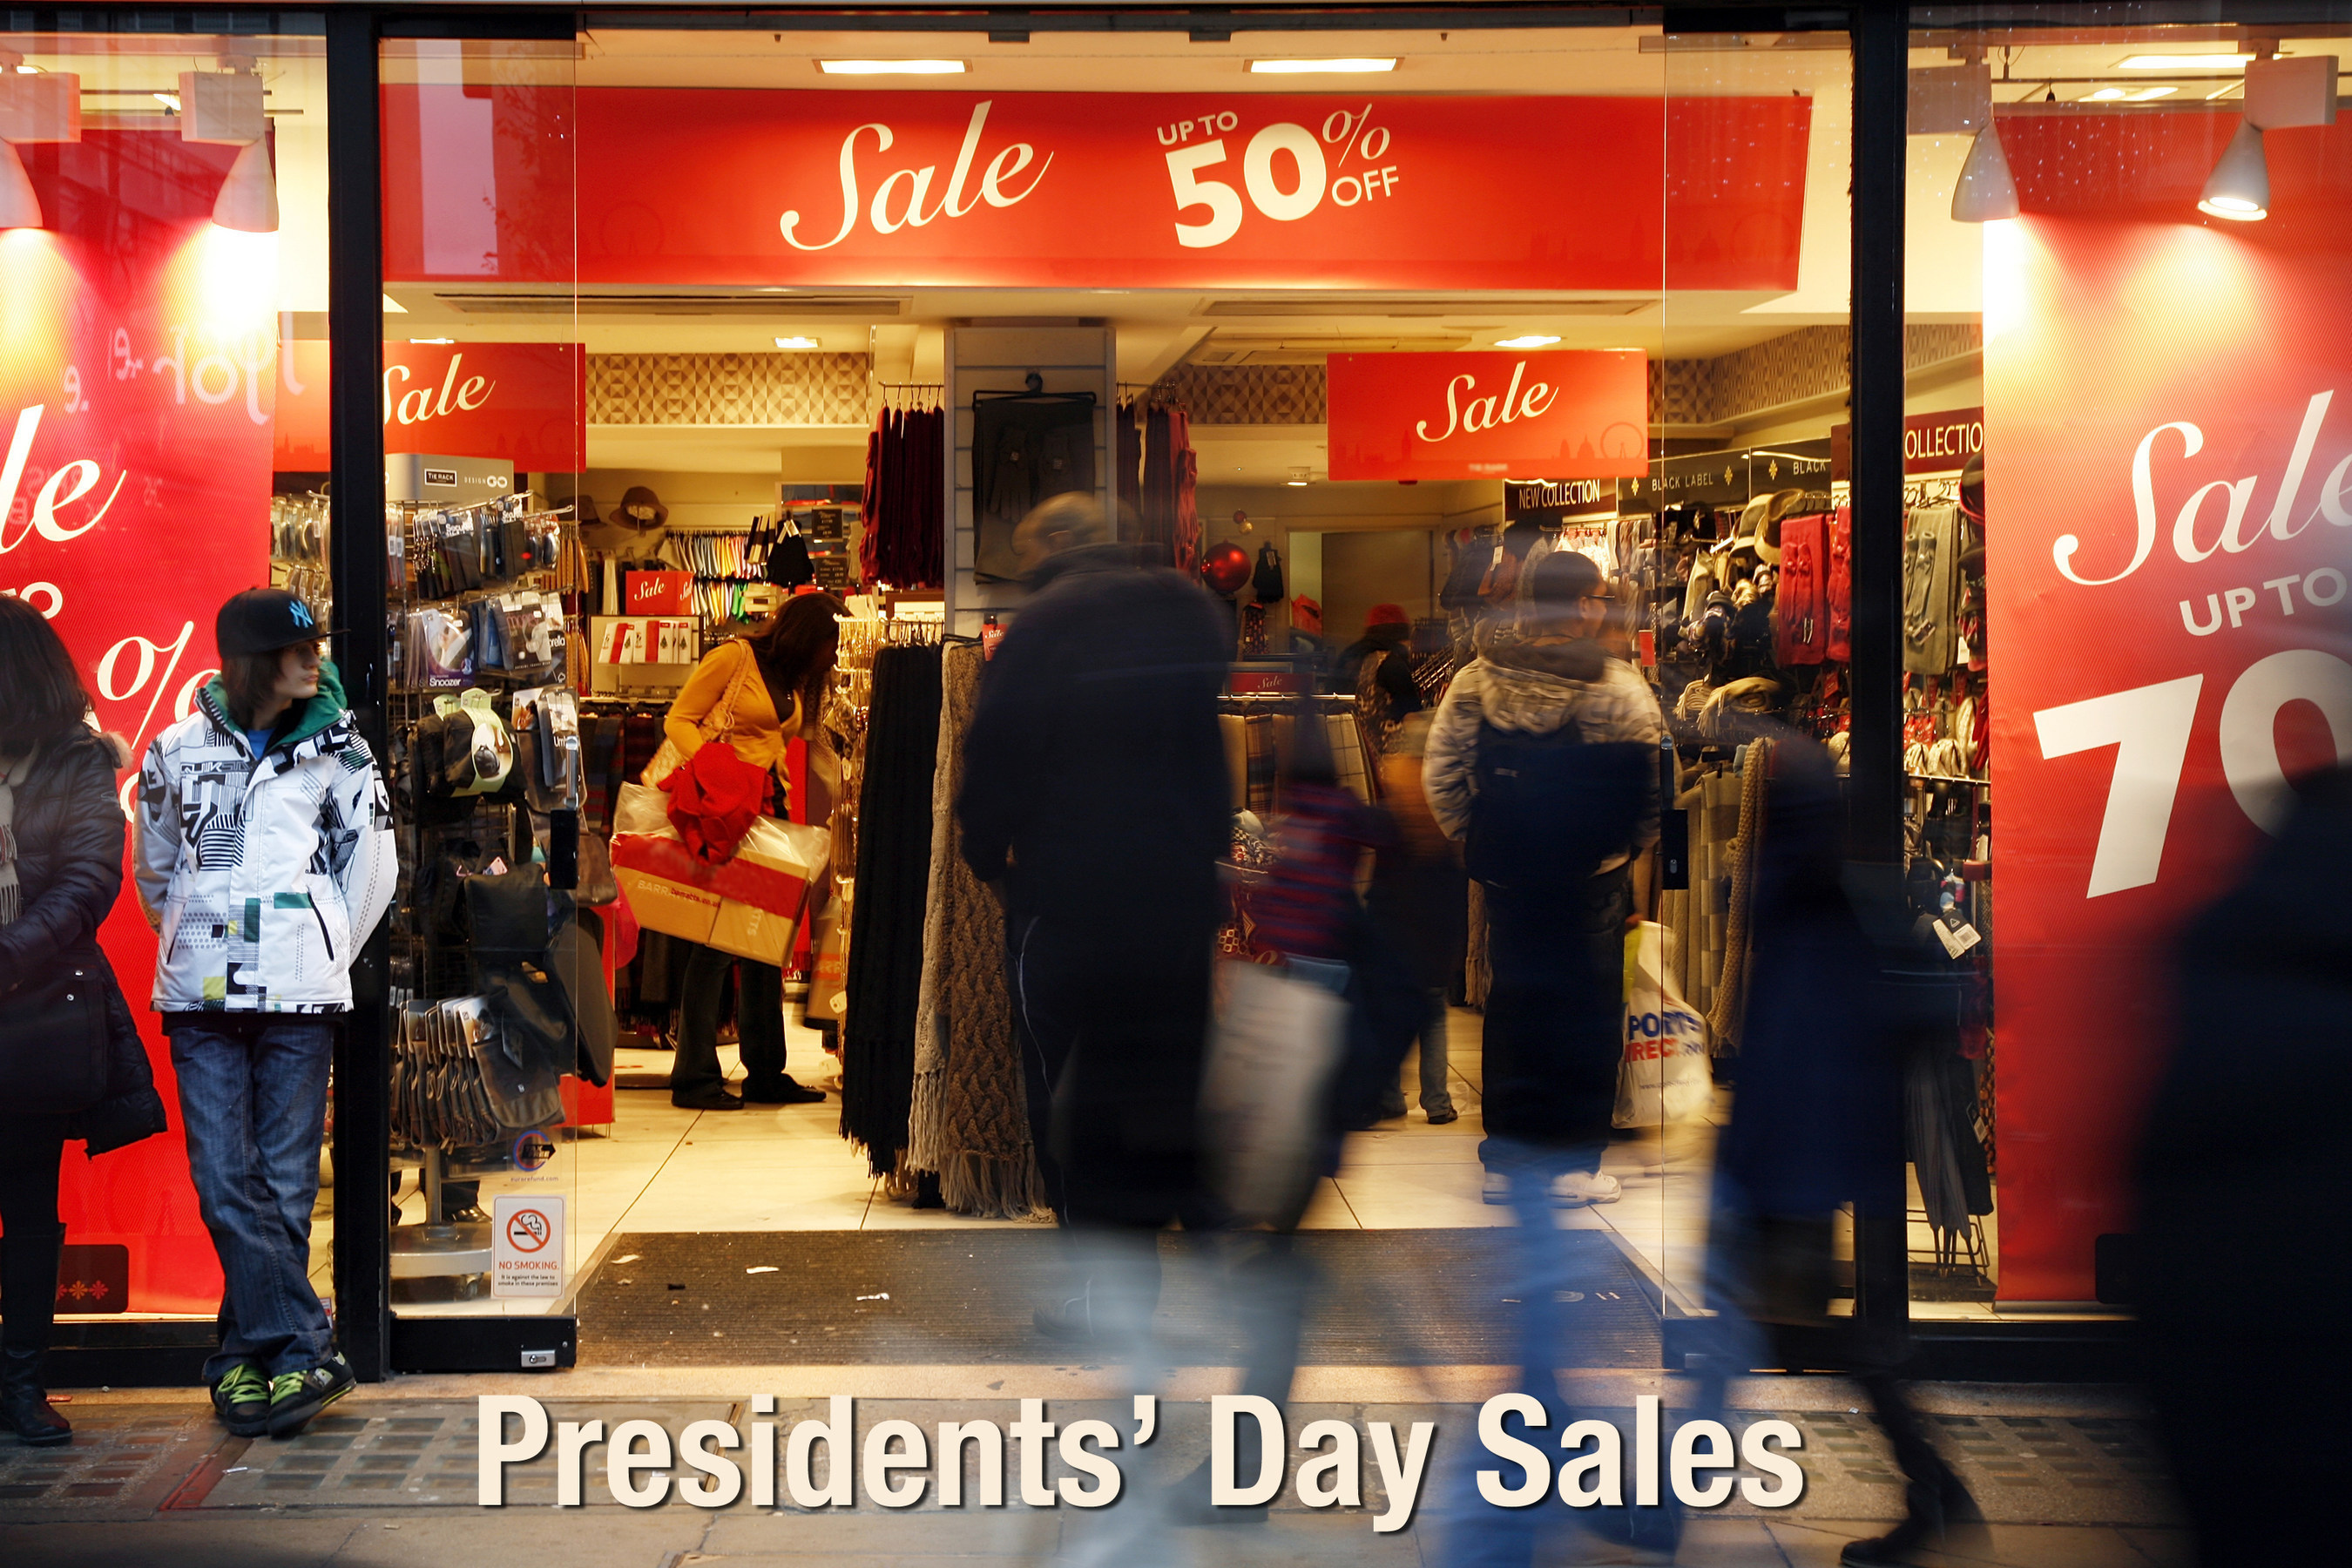 Deep discounting for presidents day sales rival cyber monday deals